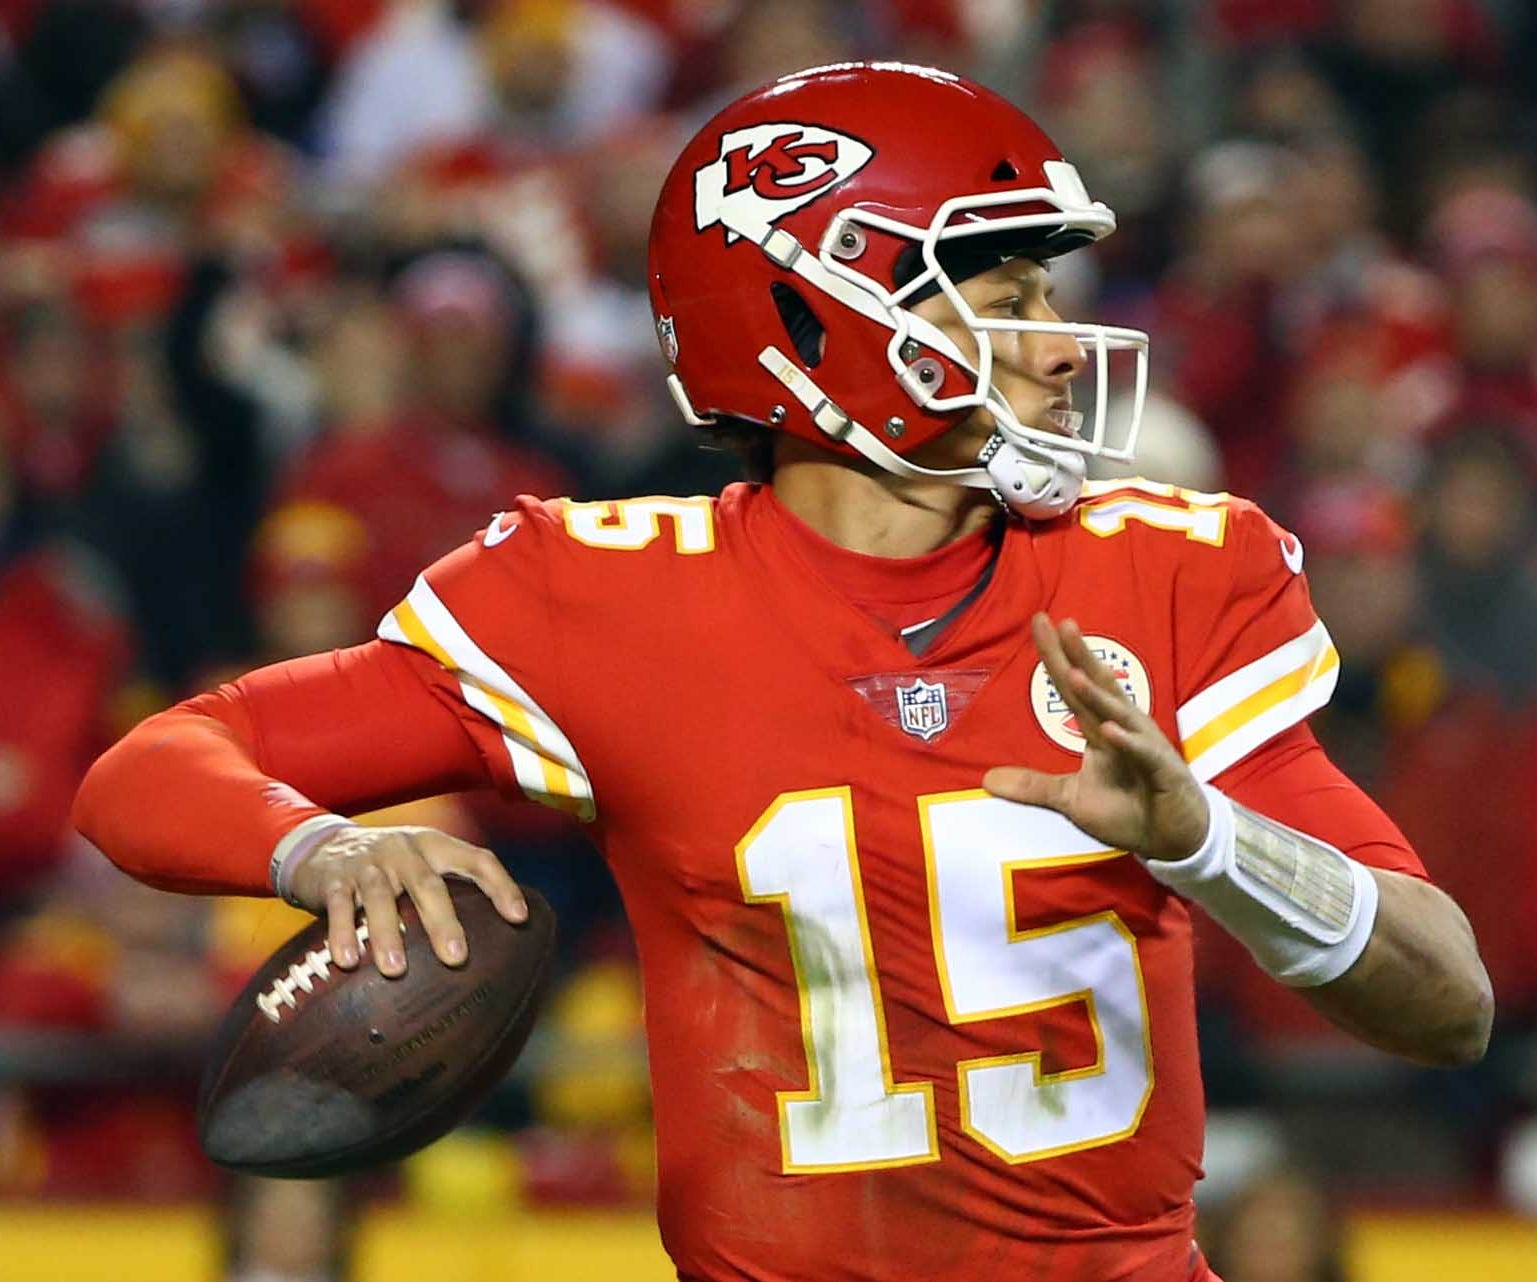 Patrick Mahomes led the NFL with 50 touchdown passes this season.